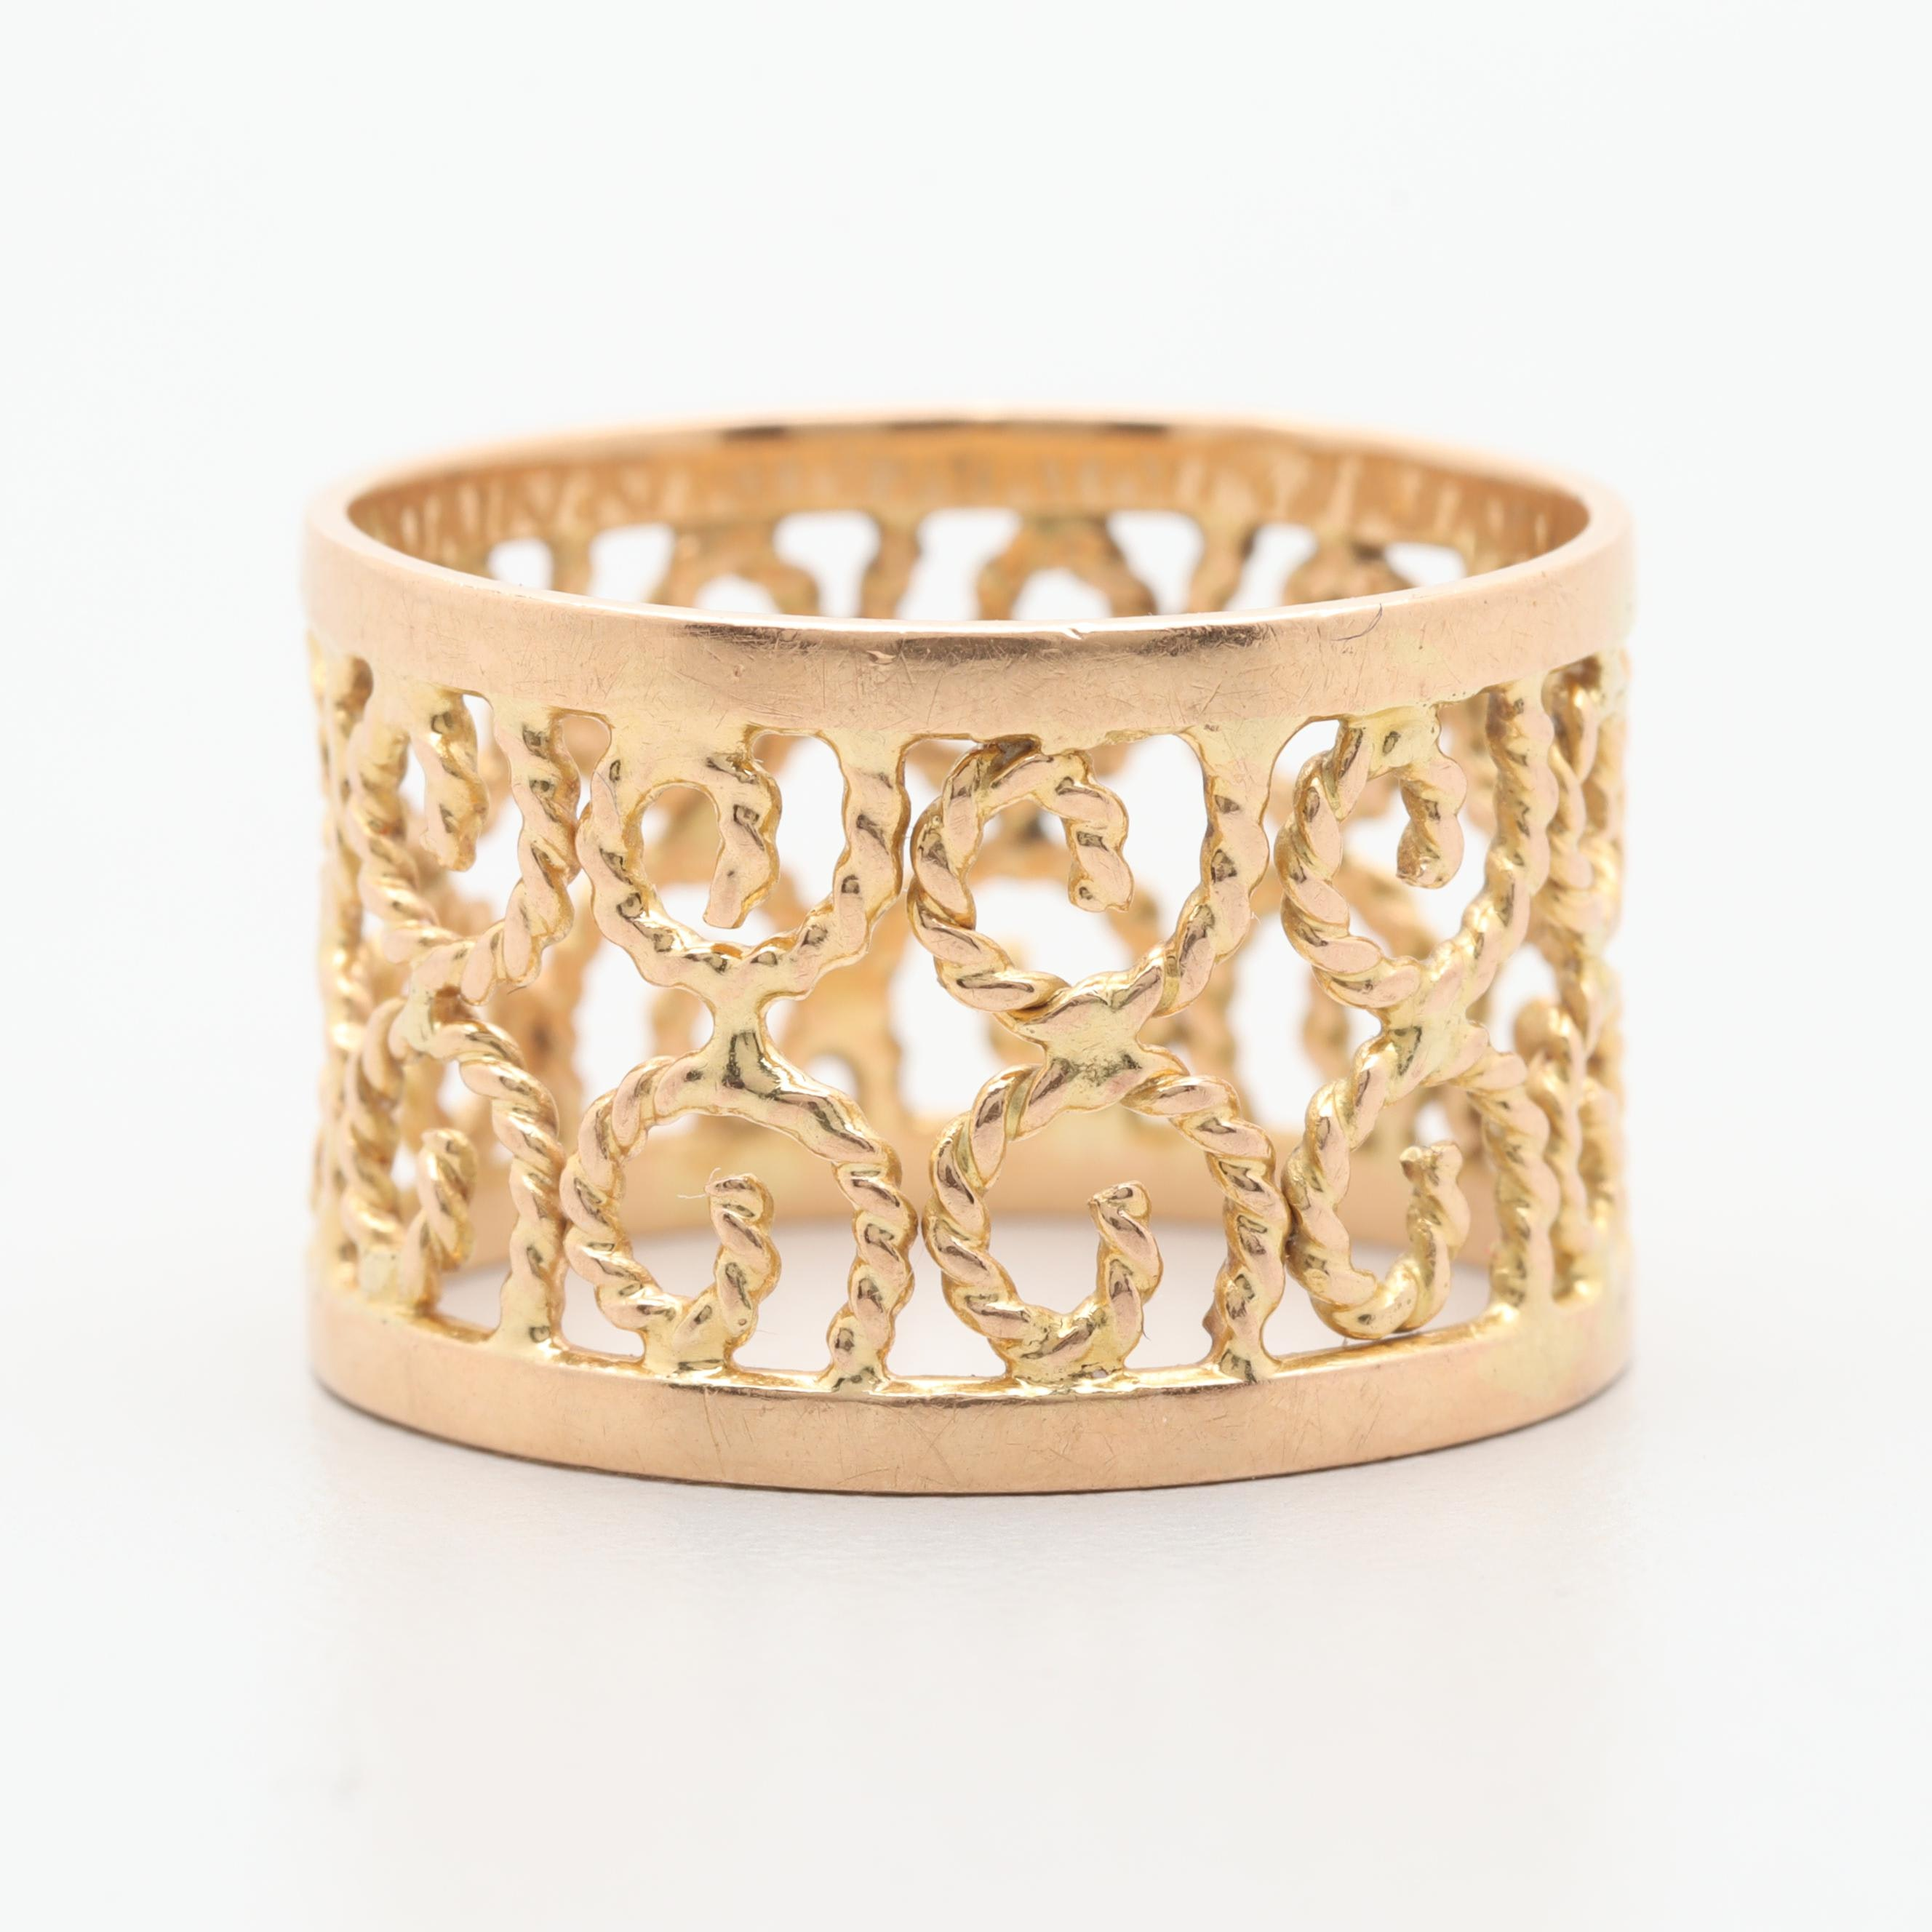 18K Yellow Gold Scrolled Openwork Ring